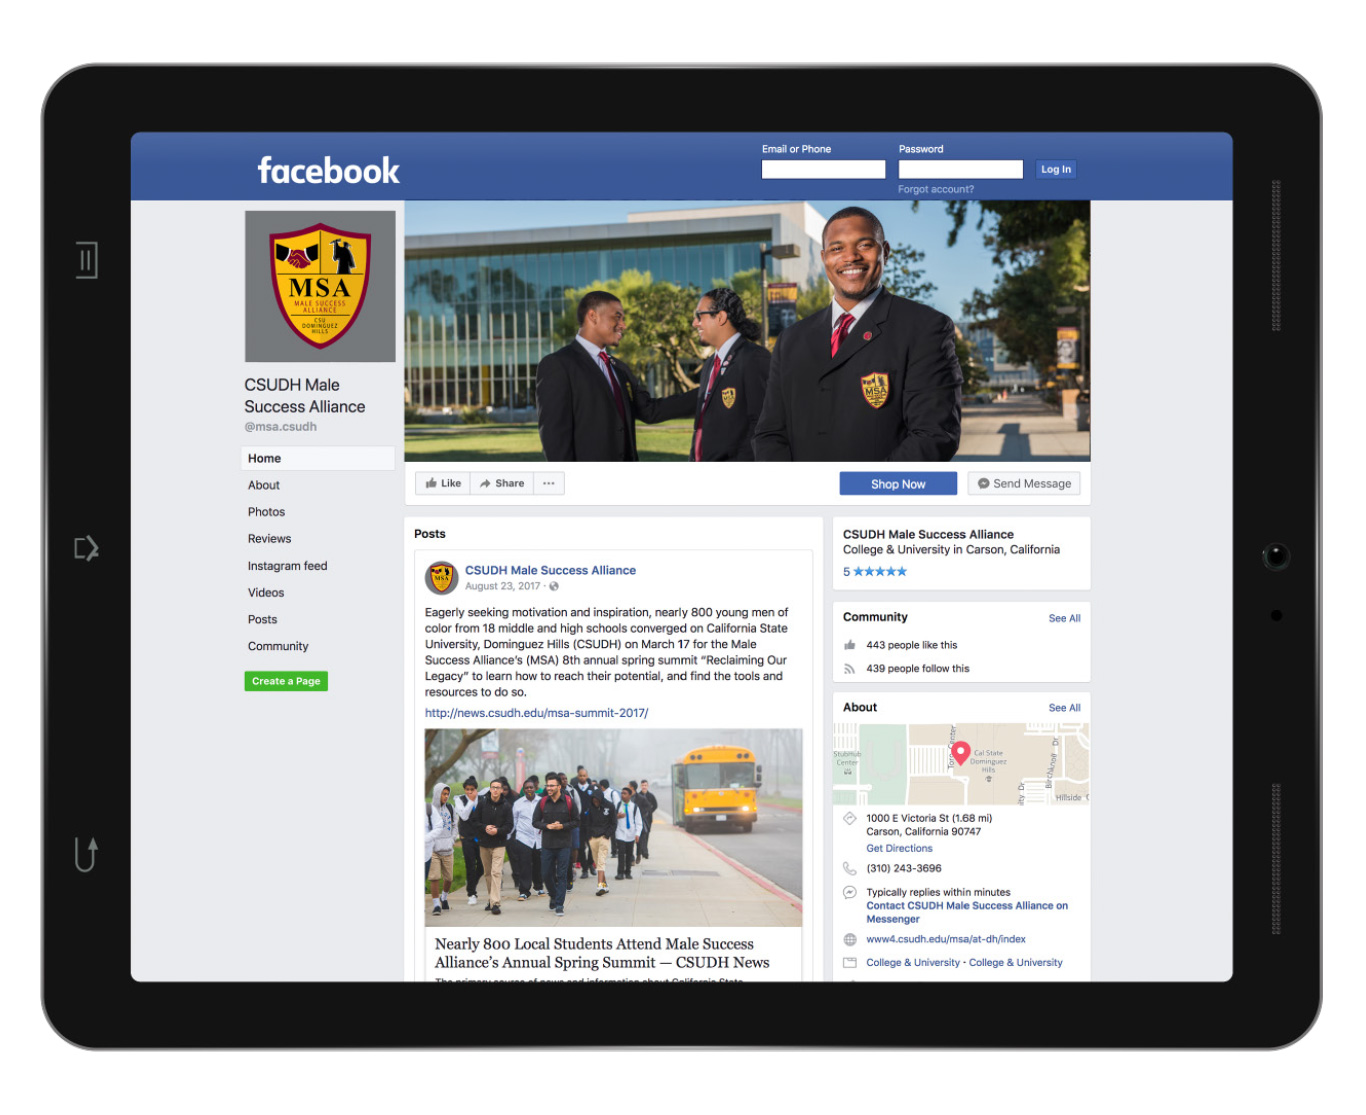 CSUDH Male Success Alliance facebook page mockup on ipad